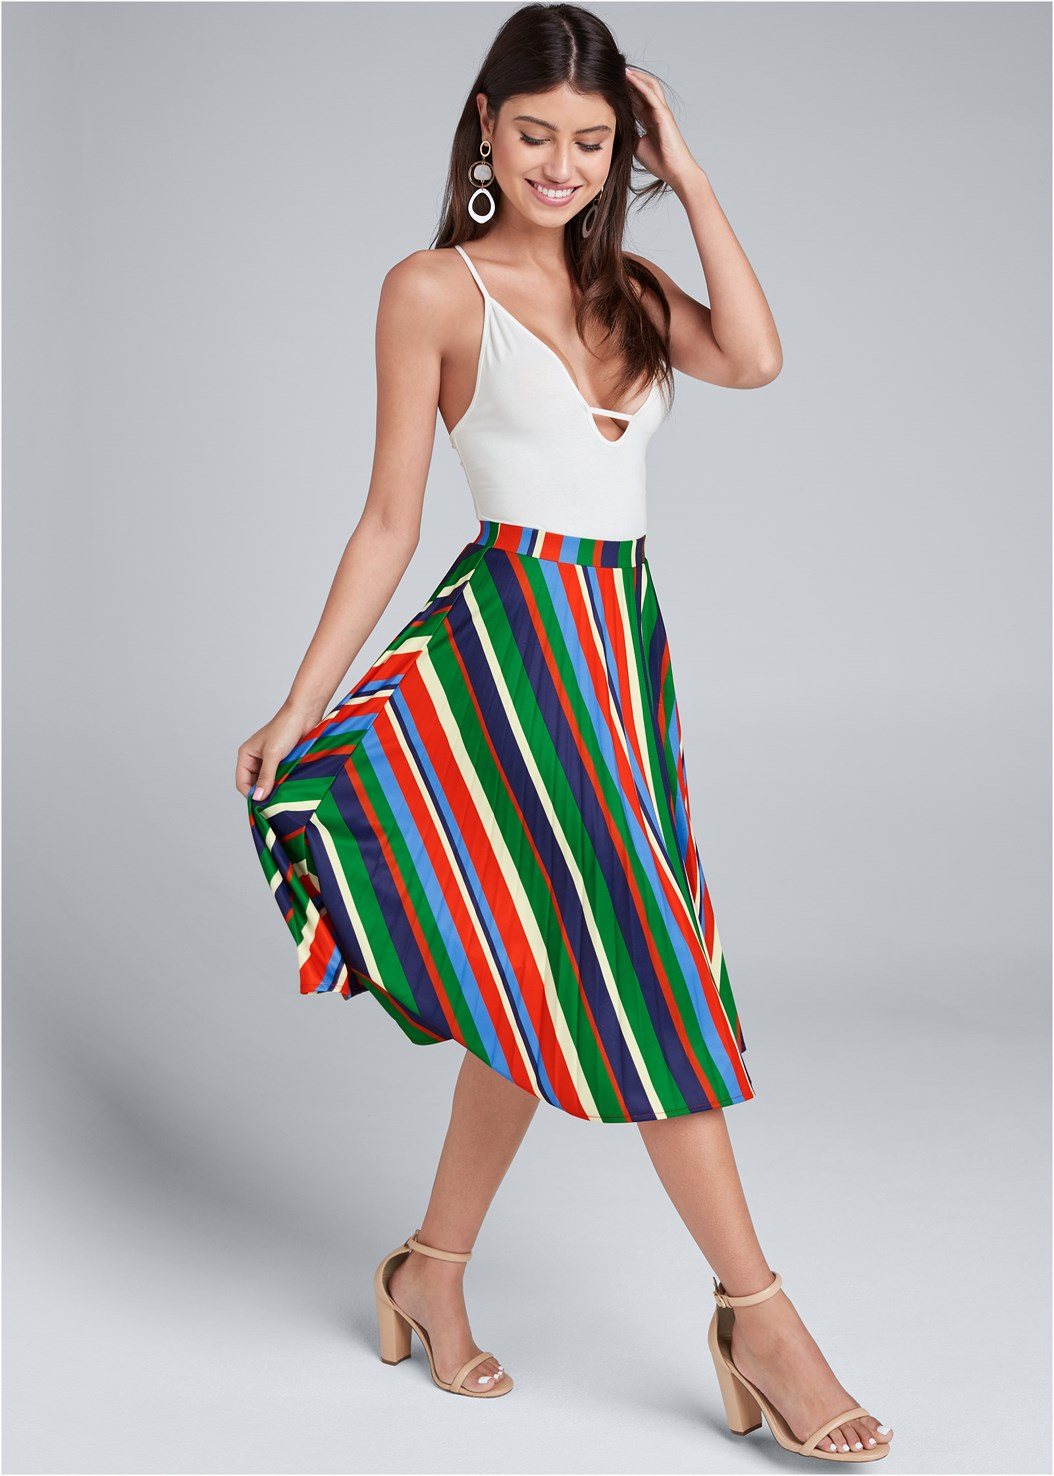 Multi Stripe Pleated Skirt,Block Heels